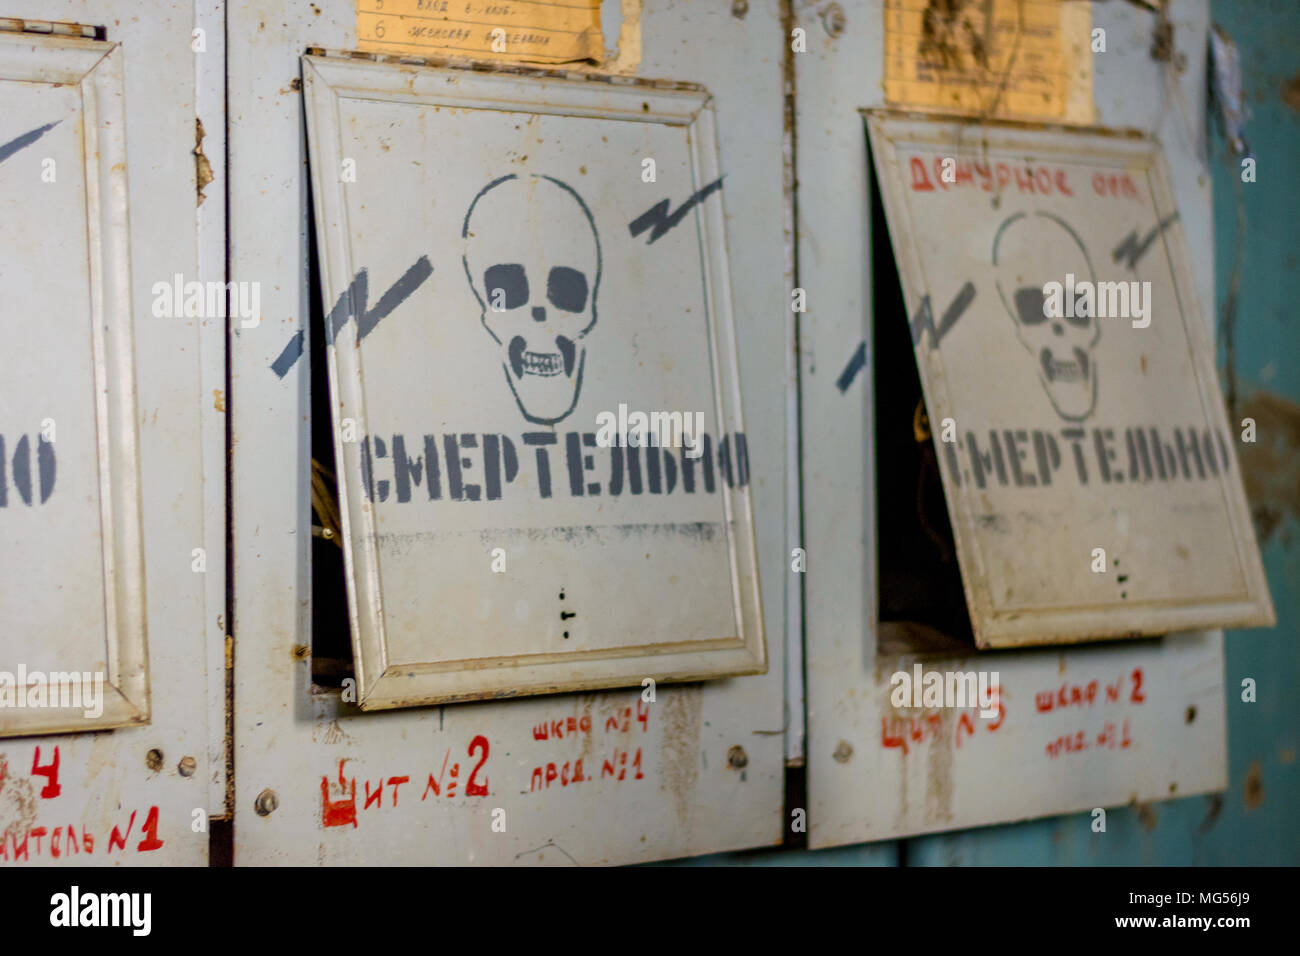 old-electricity-box-with-the-life-danger-warning-in-russian-MG56J9 Fuse Box Fire Causes on fire fox box, fire hose box, fire tube box, fire cable box, fire red box, fire indicator box, fire pump box, fire starter box,